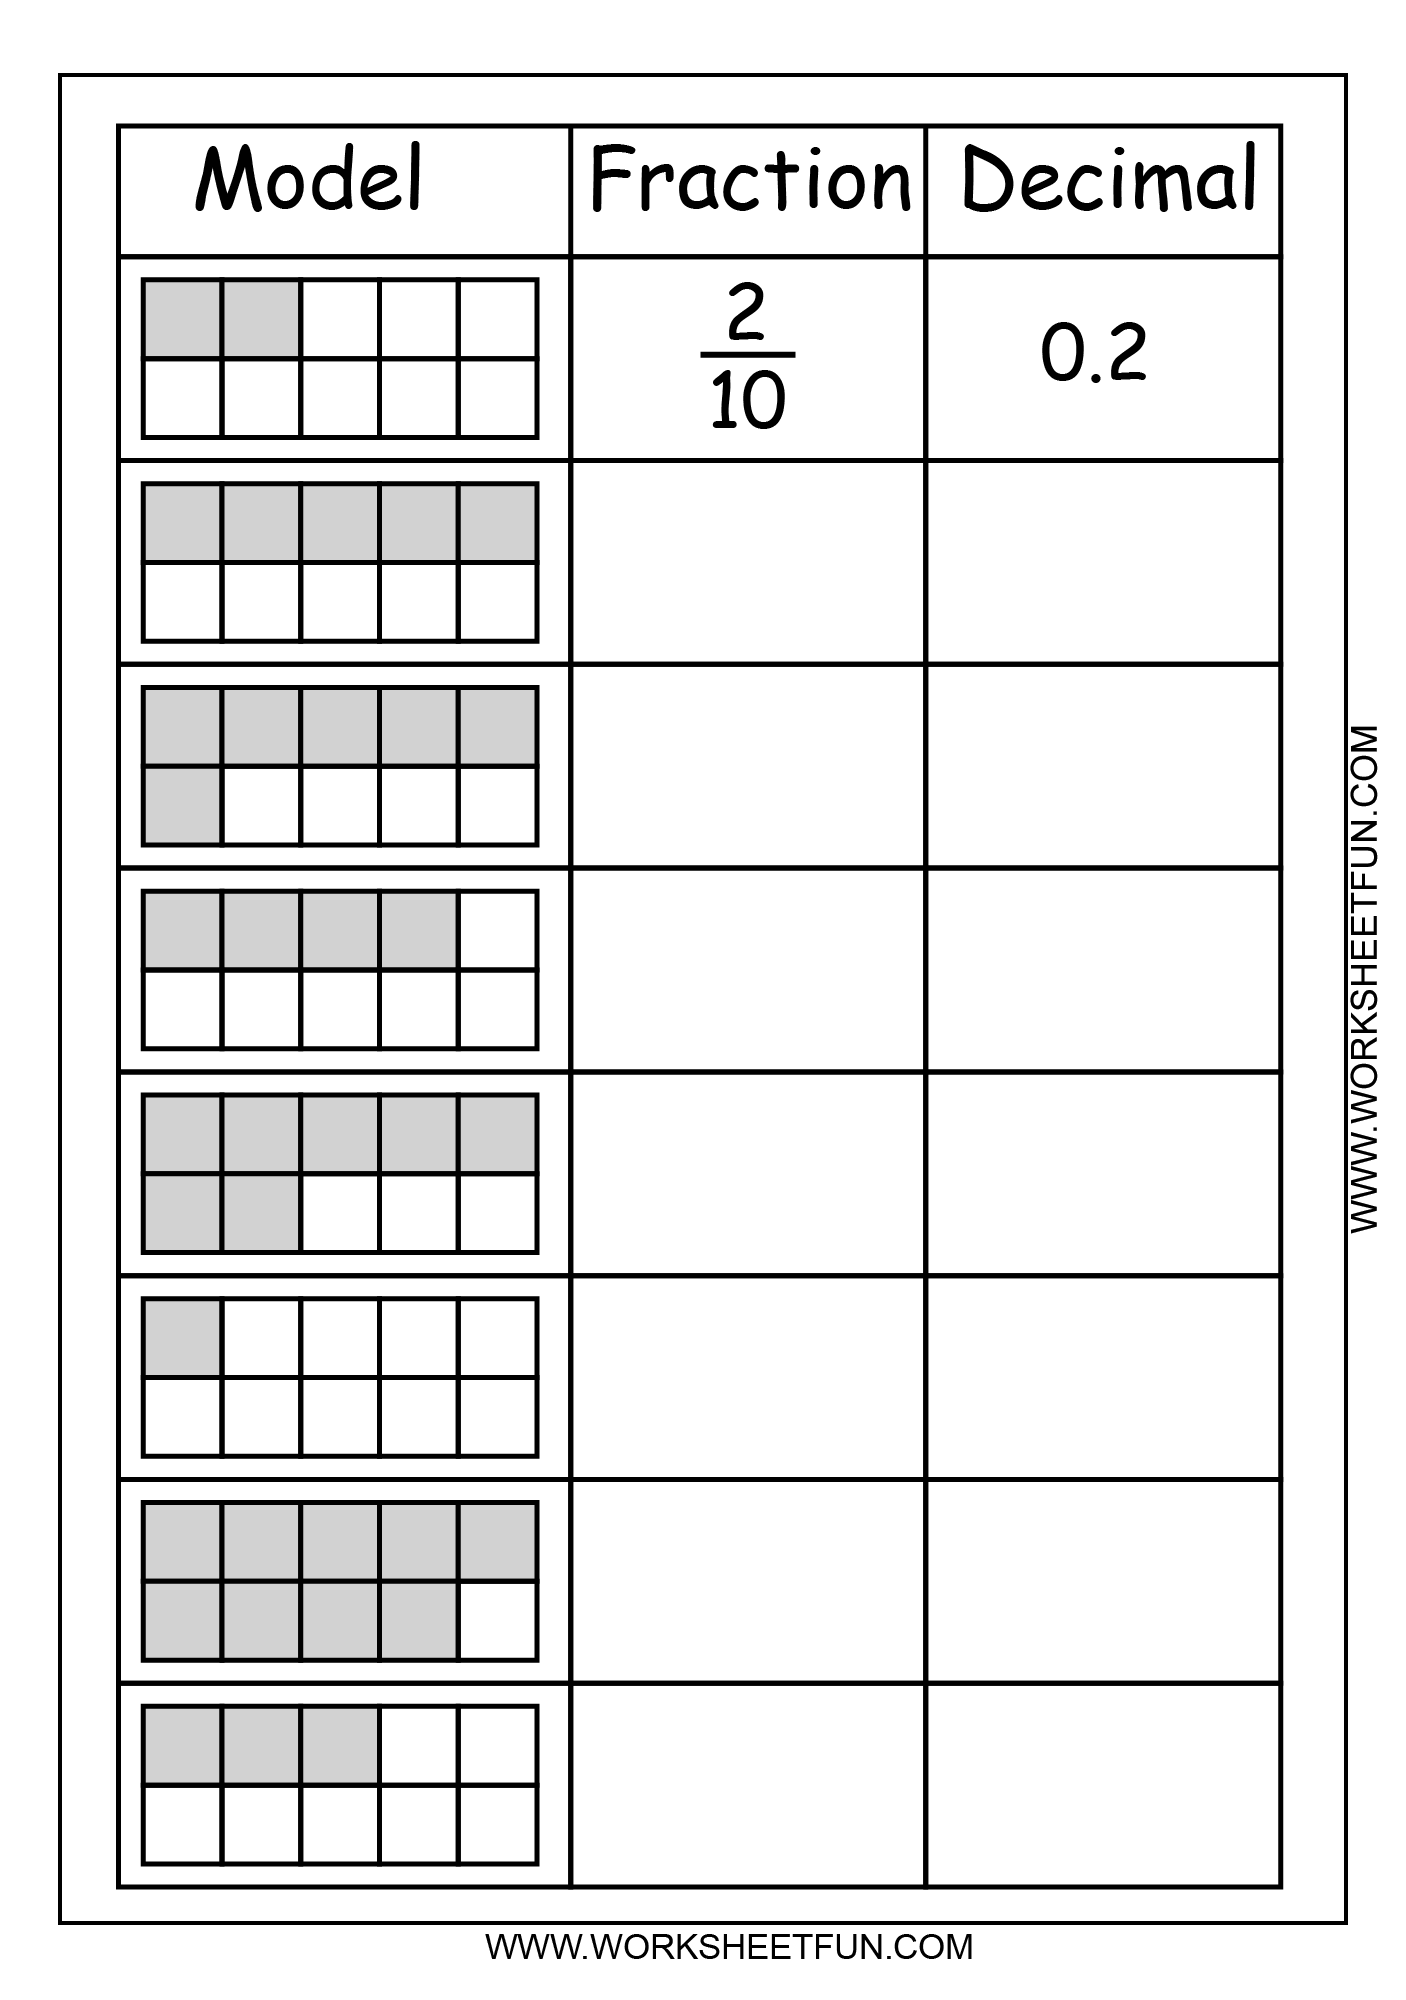 Printables Fractions And Decimals Worksheets 1000 images about decimal worksheets on pinterest models kid and adding decimals